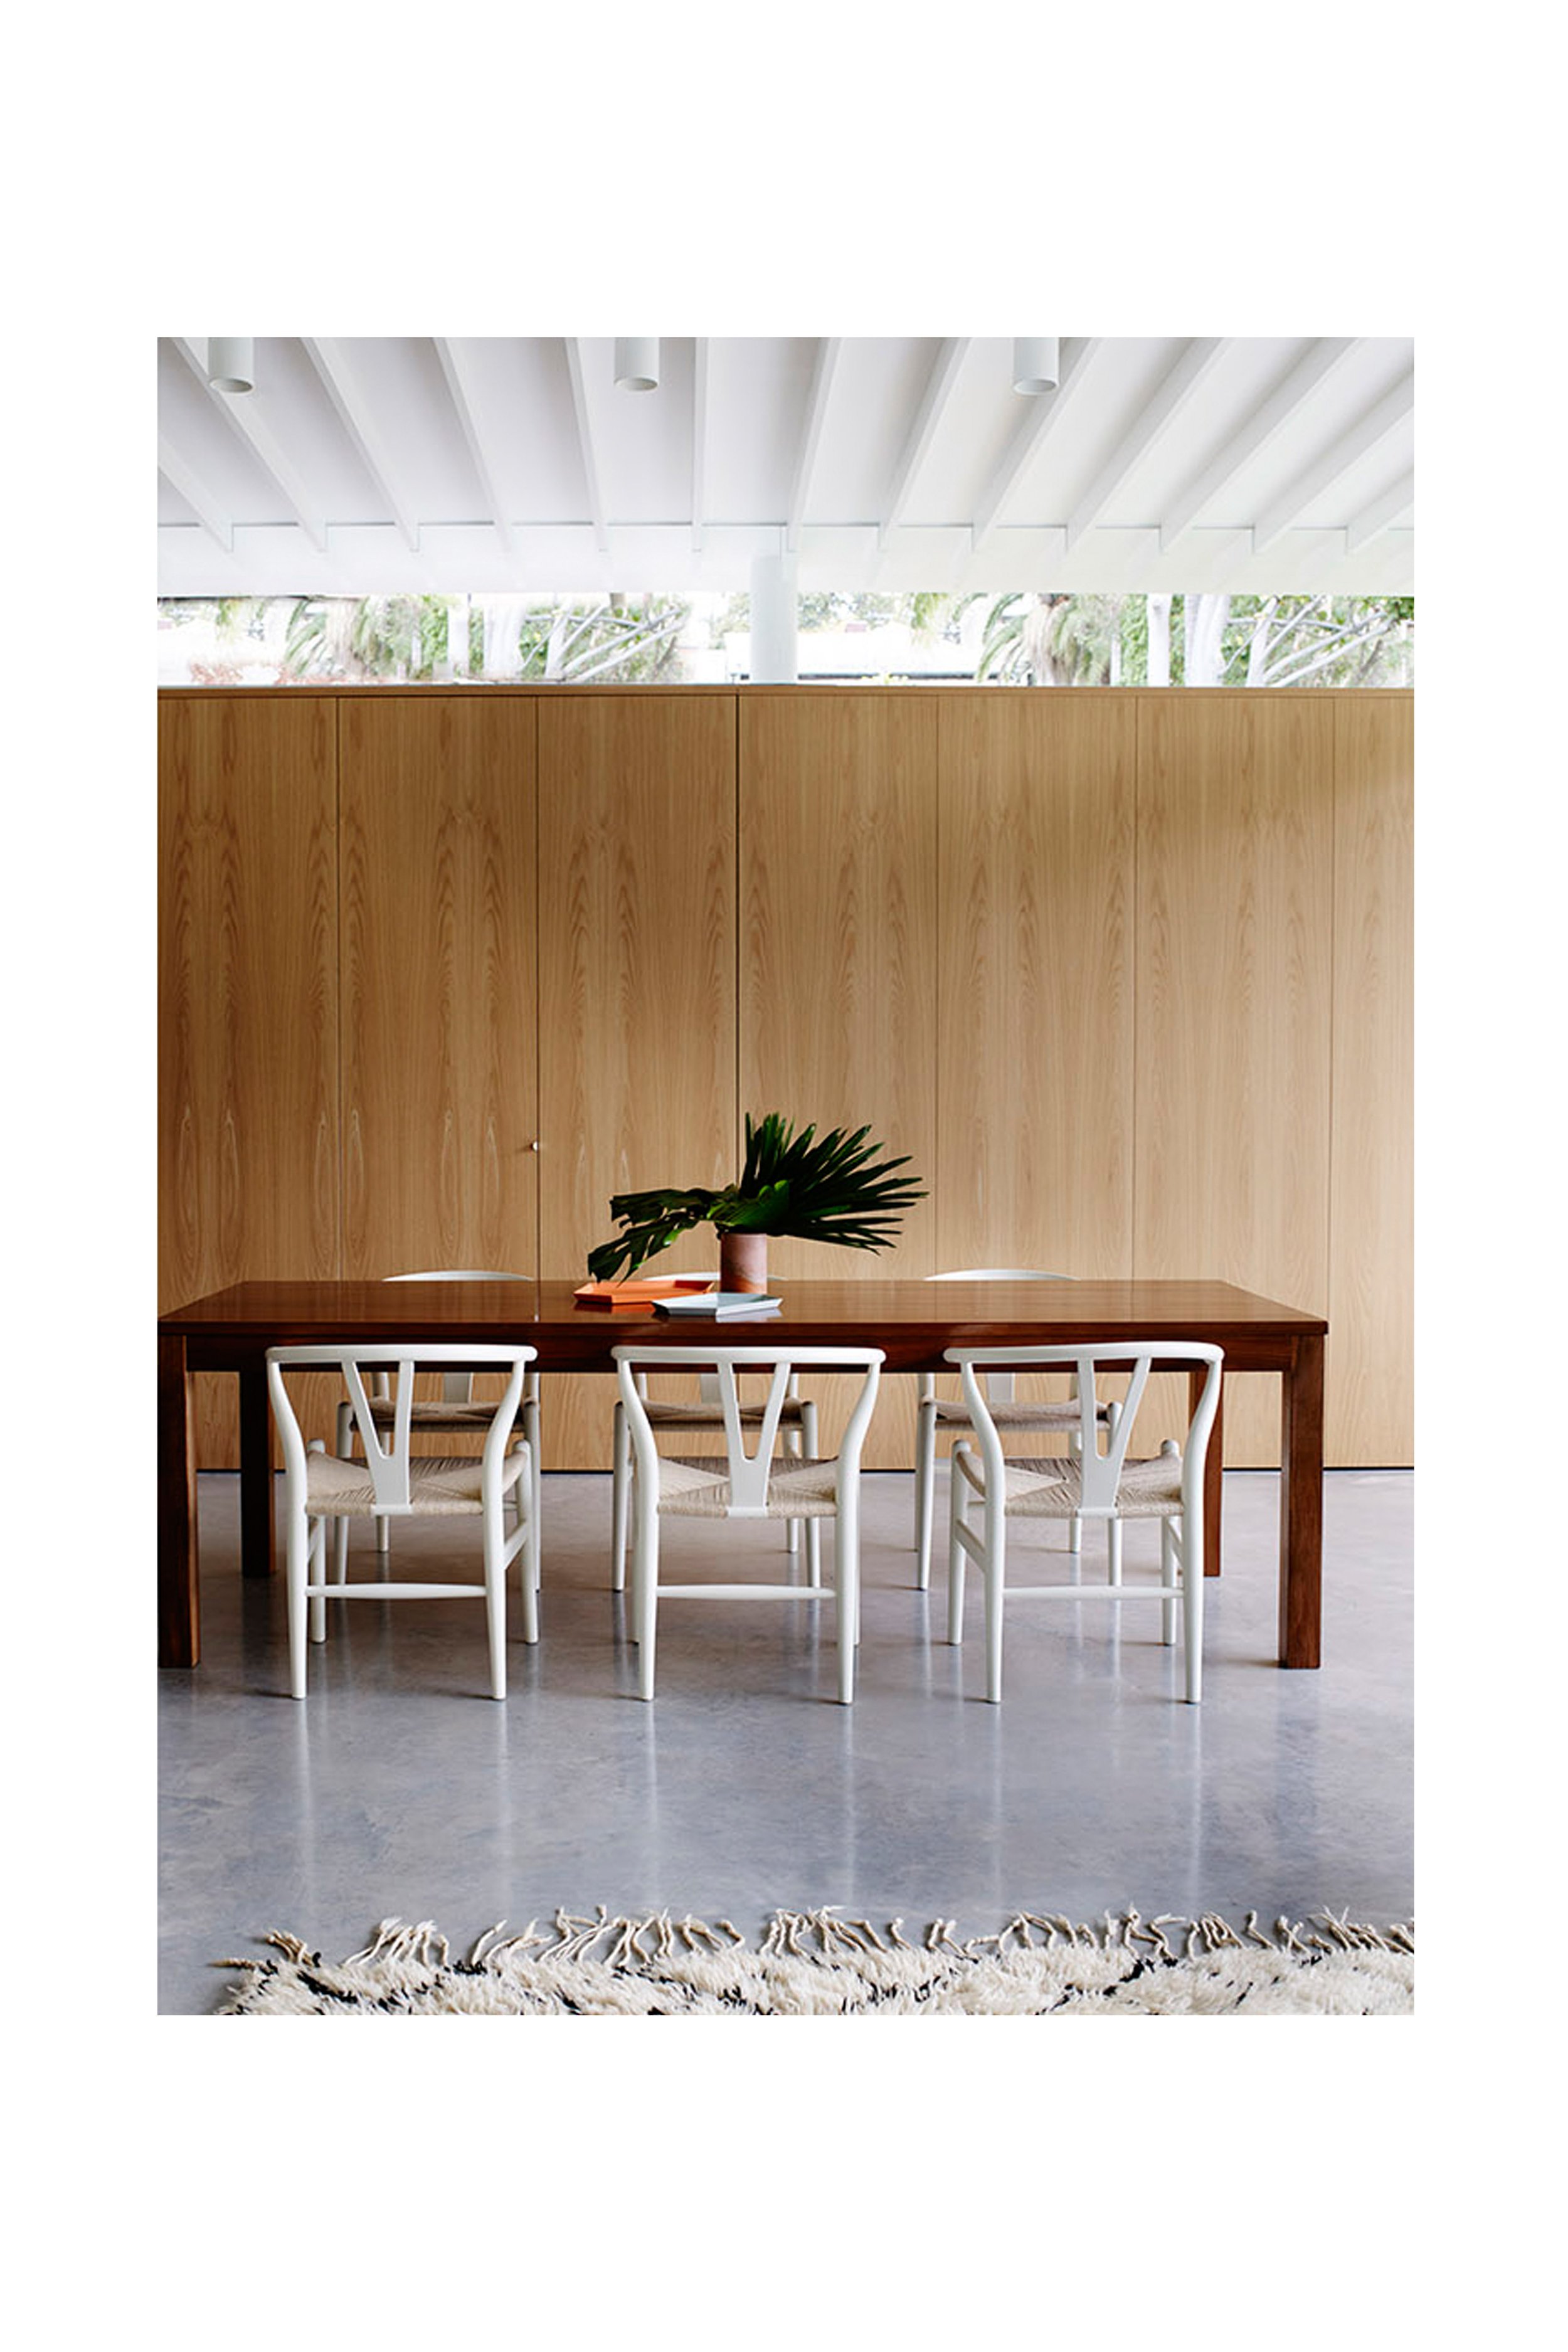 Website | File | Terence Yong Architecture | Coogee House : 2 in 1 | Addition | Cohesive interiors | An external Southern joinery wall to the Living-Dining areas | Wow, the little finger pull suggests that it is convertible into a Study corner!.jpg